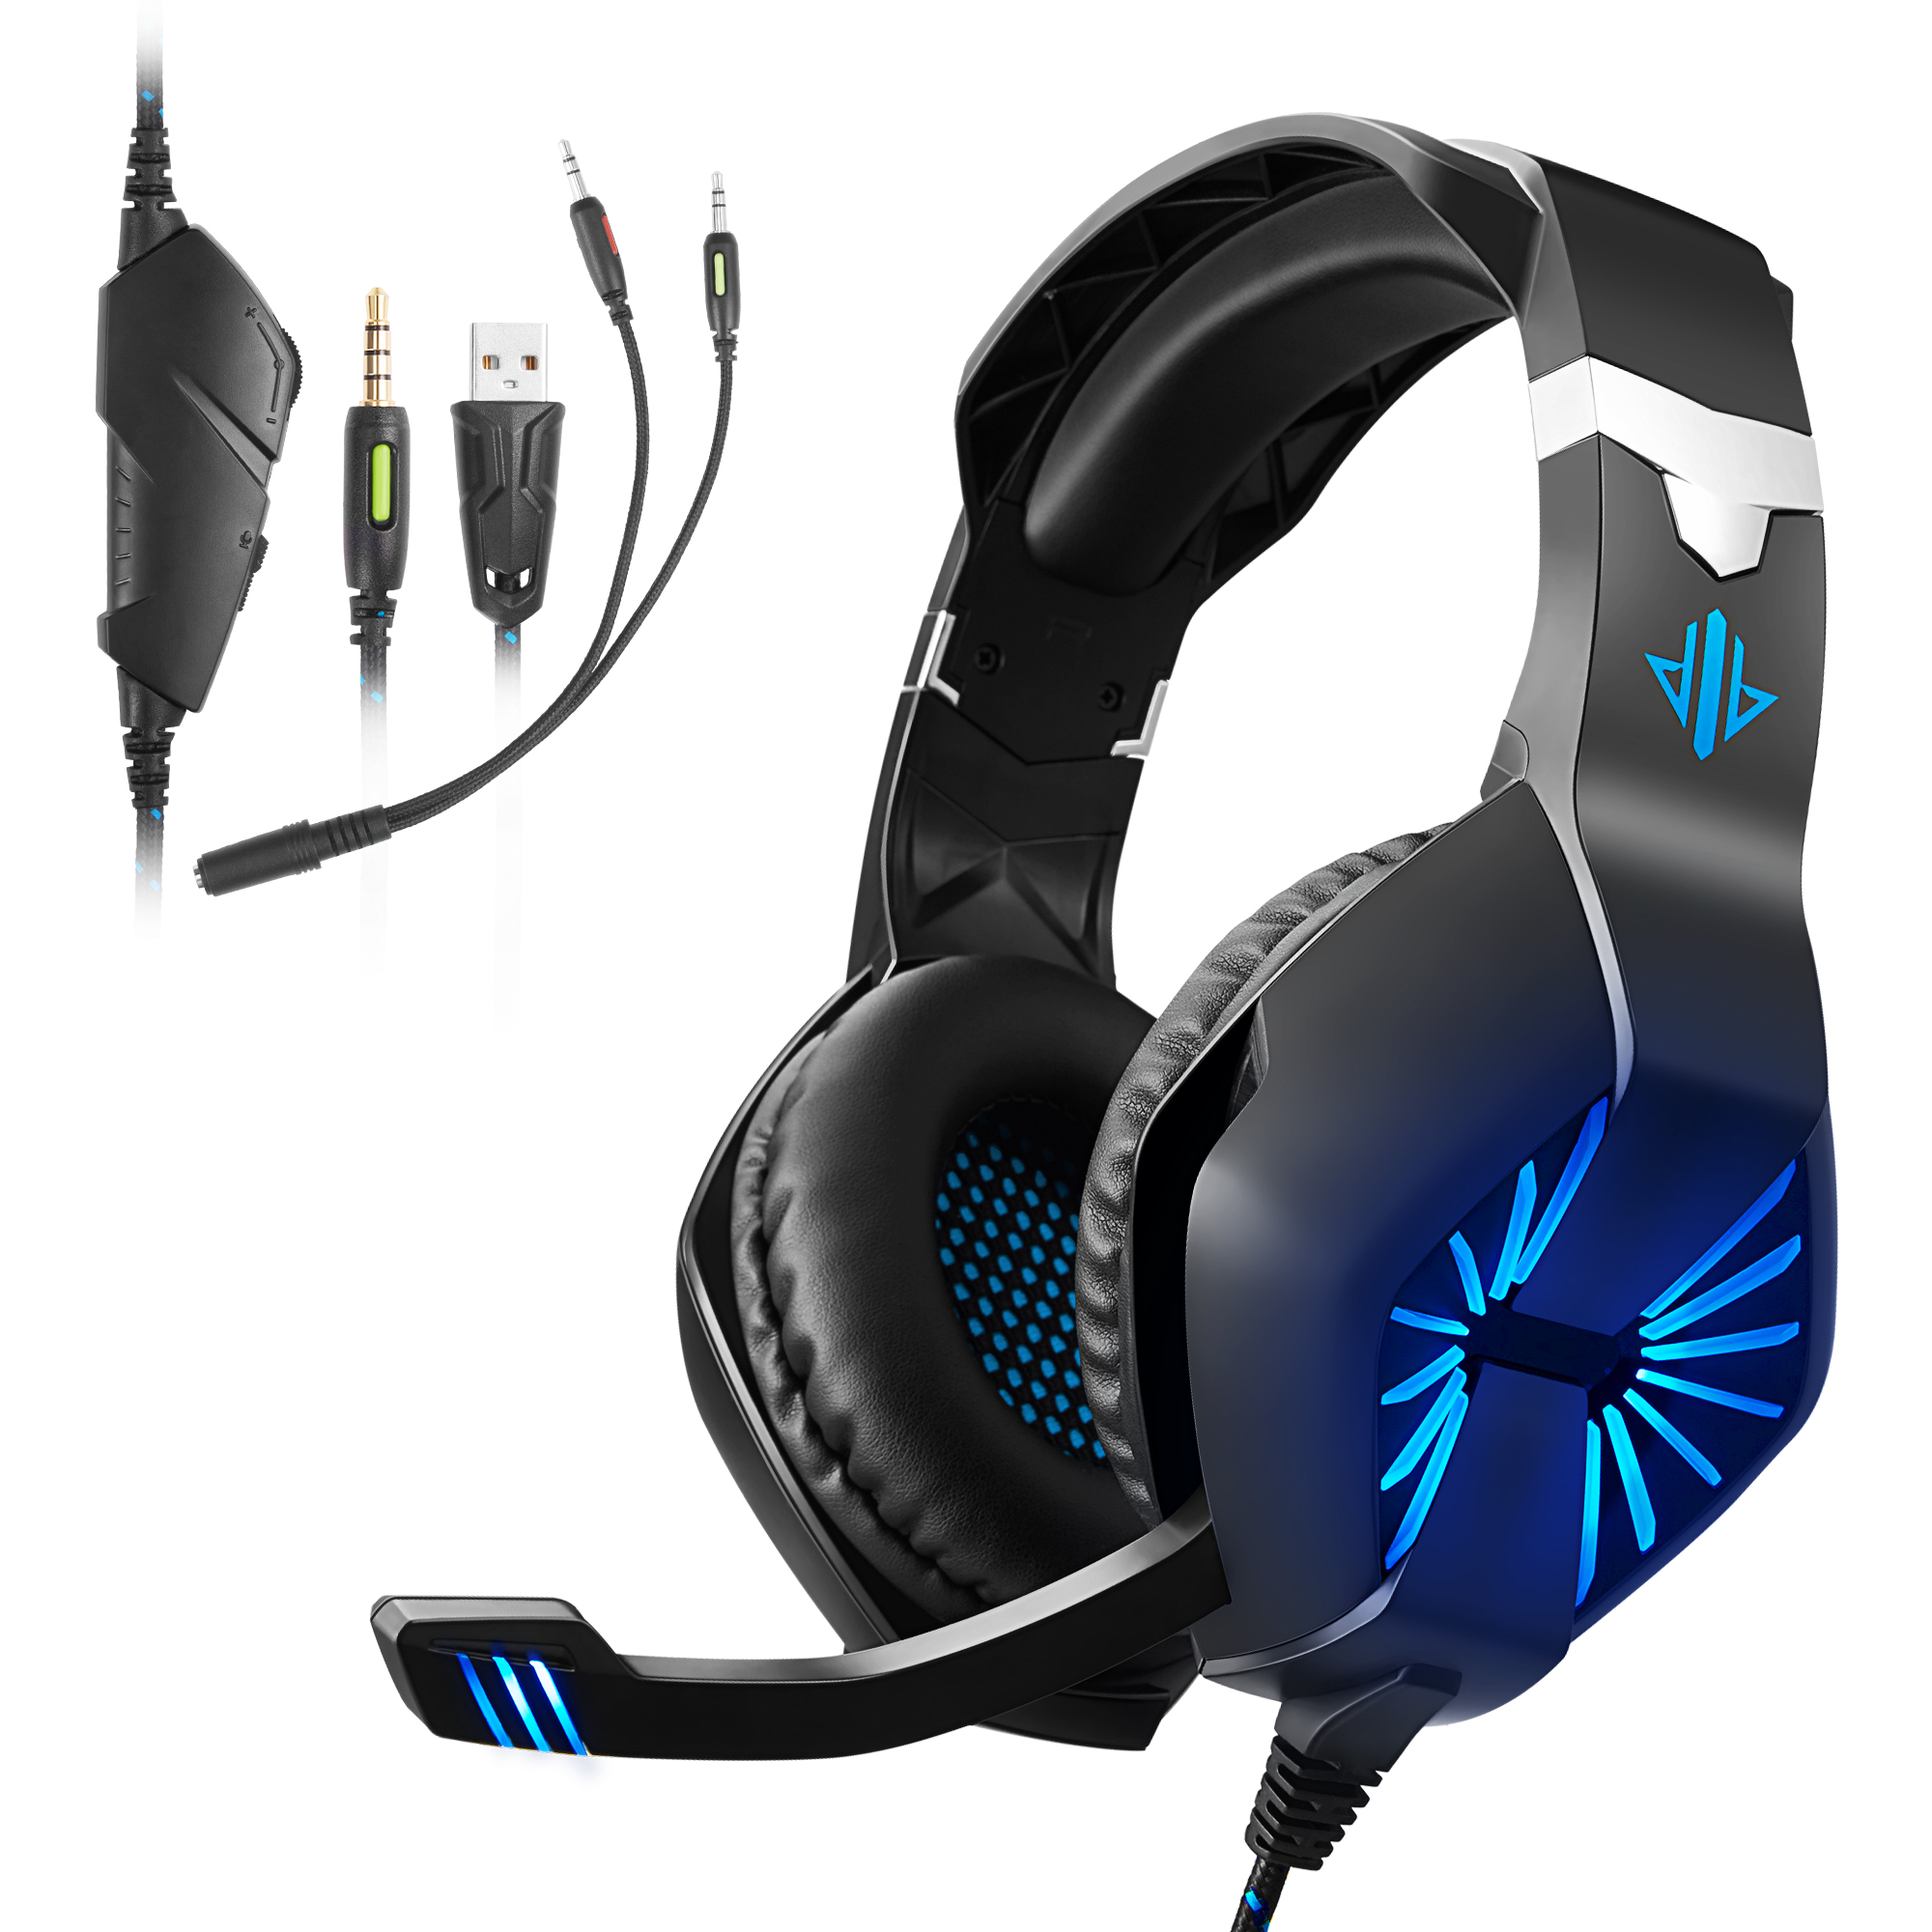 Gaming Headset Xbox One Surround Sound Stereo, PS4 Headset with Noise Canceling Mic & LED Light, Compatible with PC, PS4, Xbox One Controller(Adapter Needed), Nintendo Switch